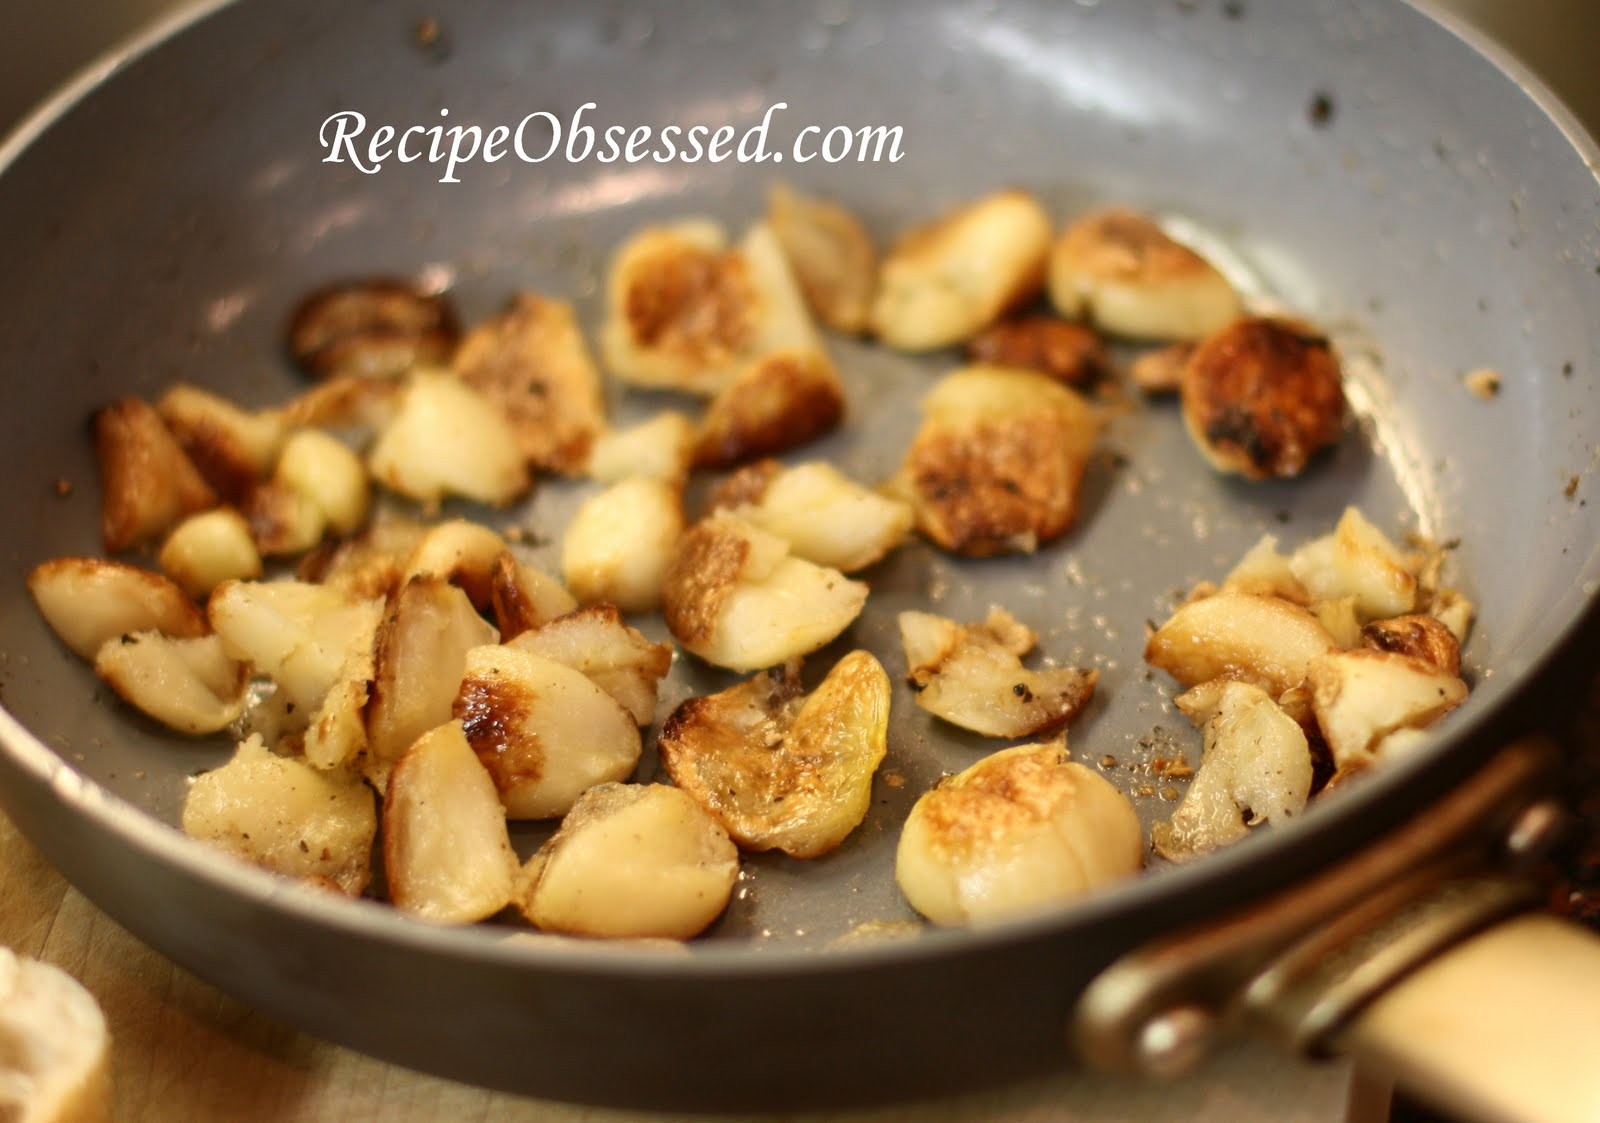 Roasting Peeled Garlic Cloves in Butter - Bing images